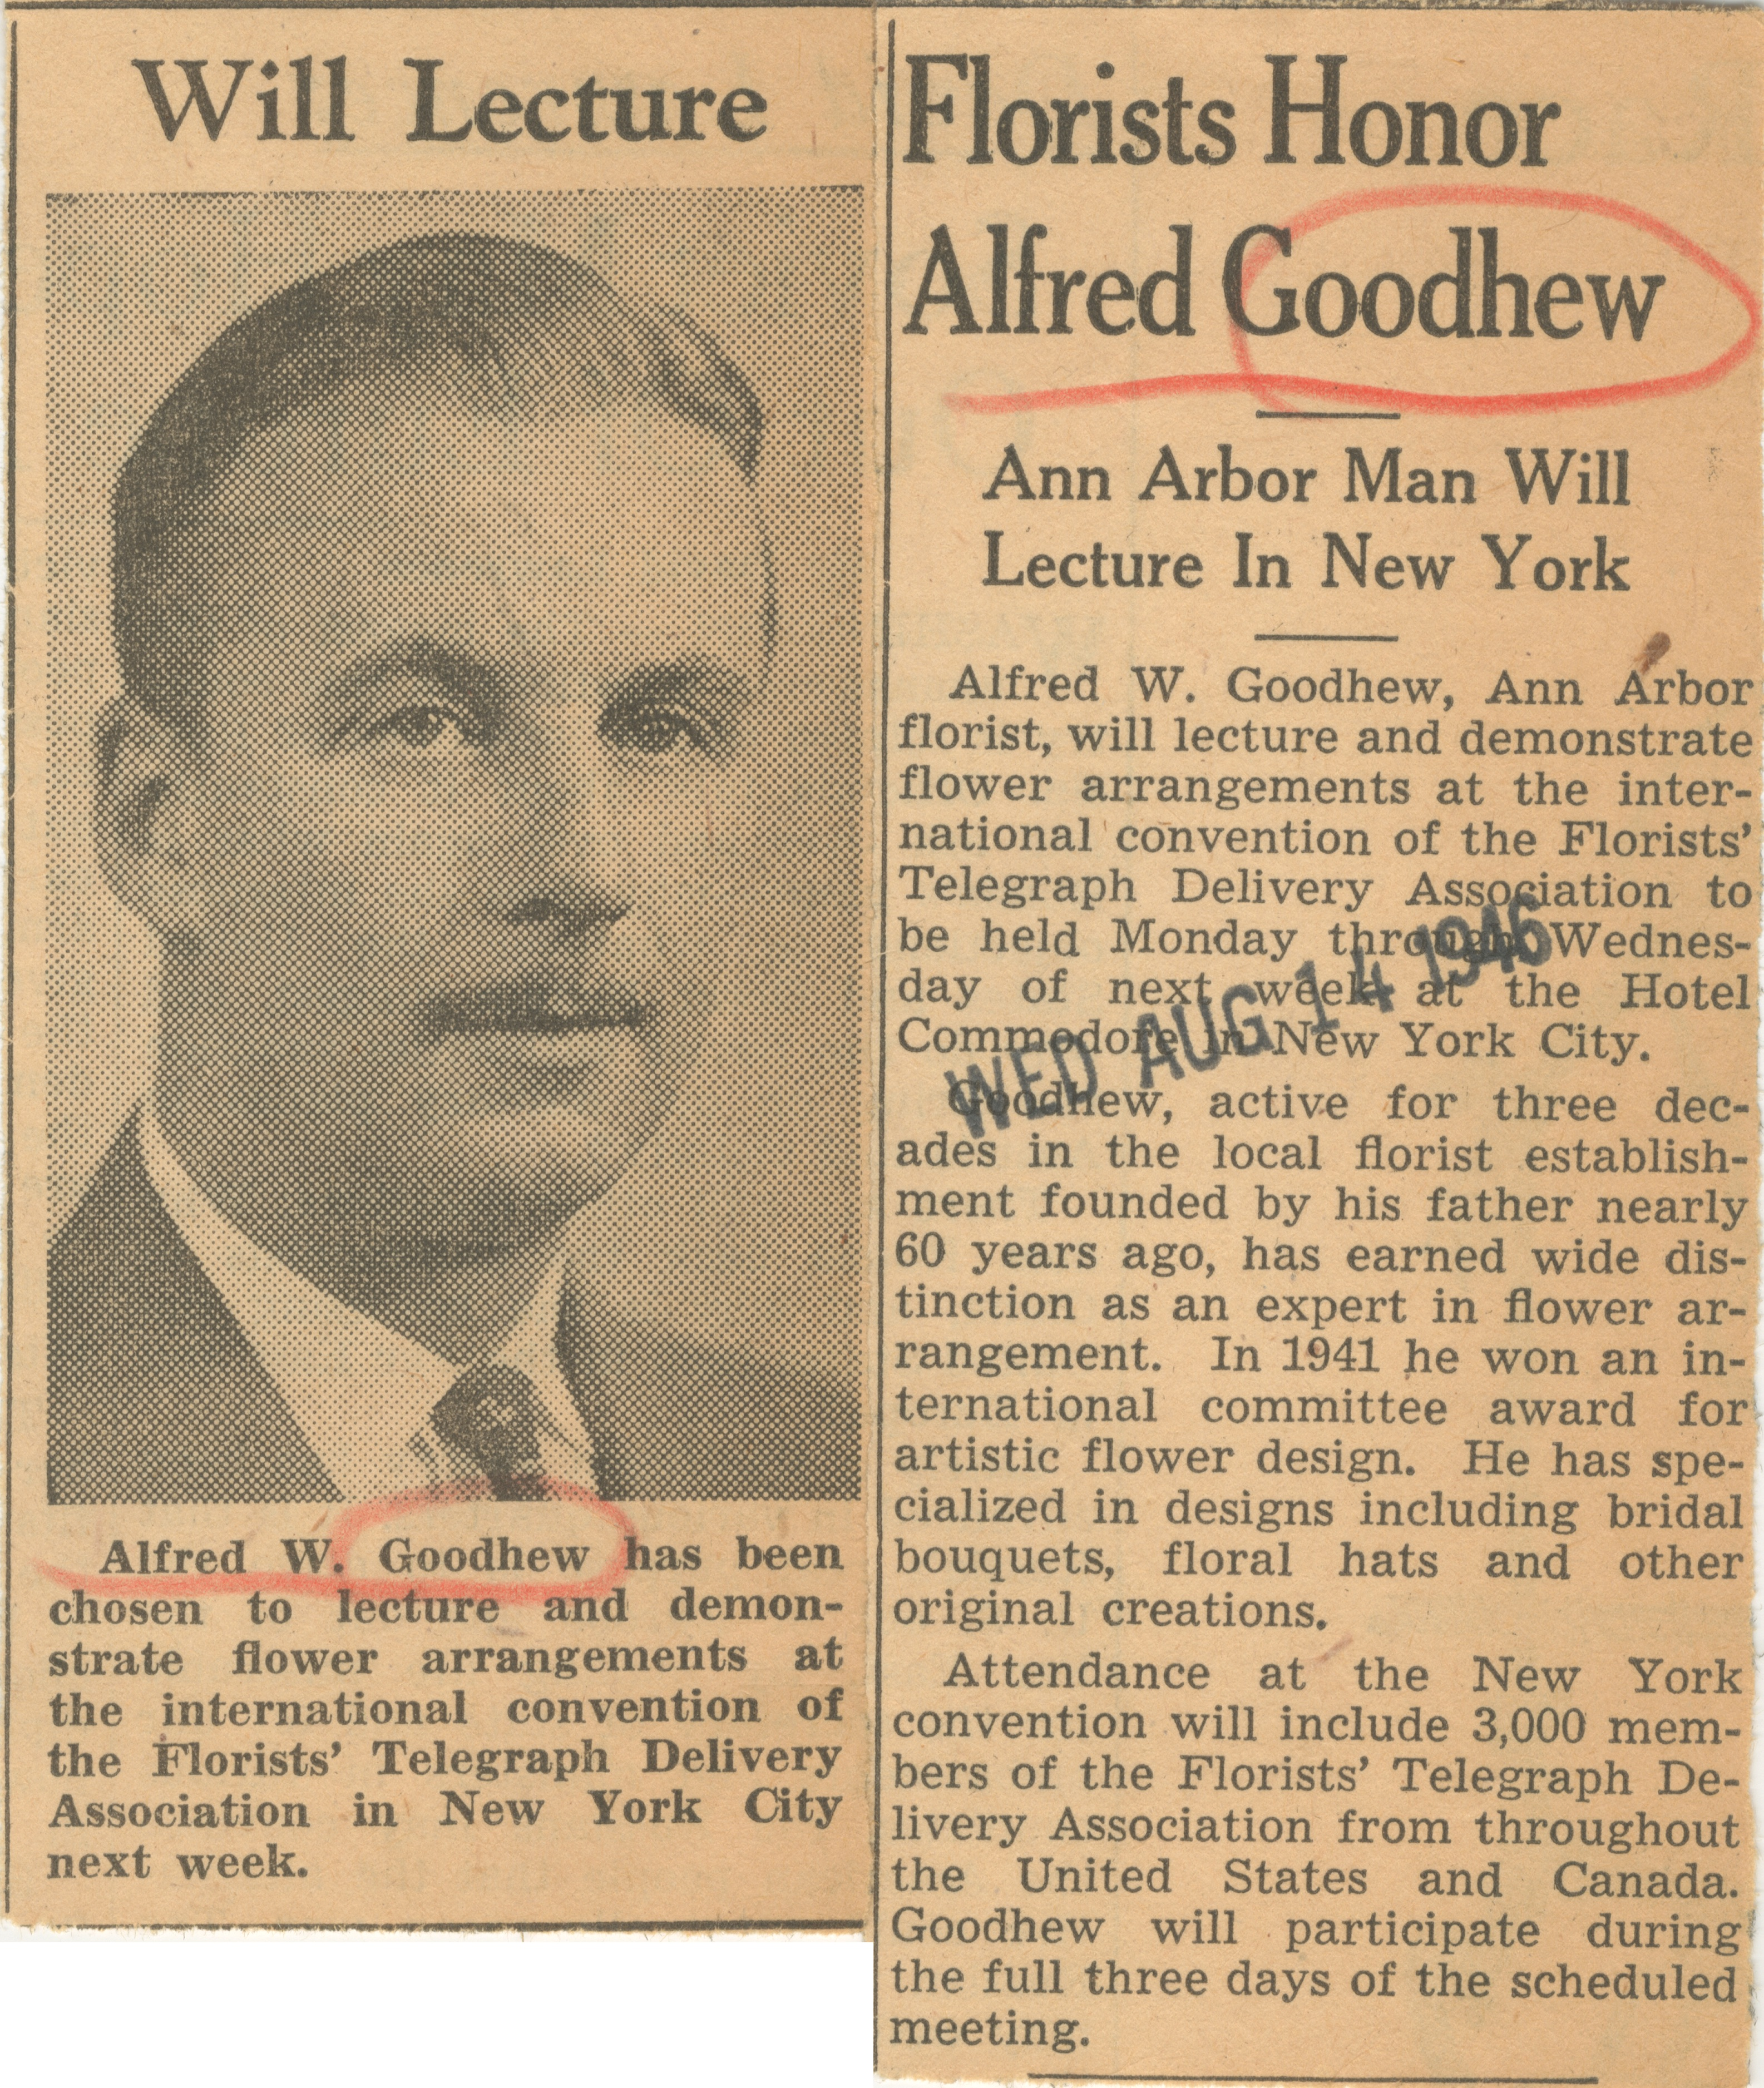 Florists Honor Alfred Goodhew image